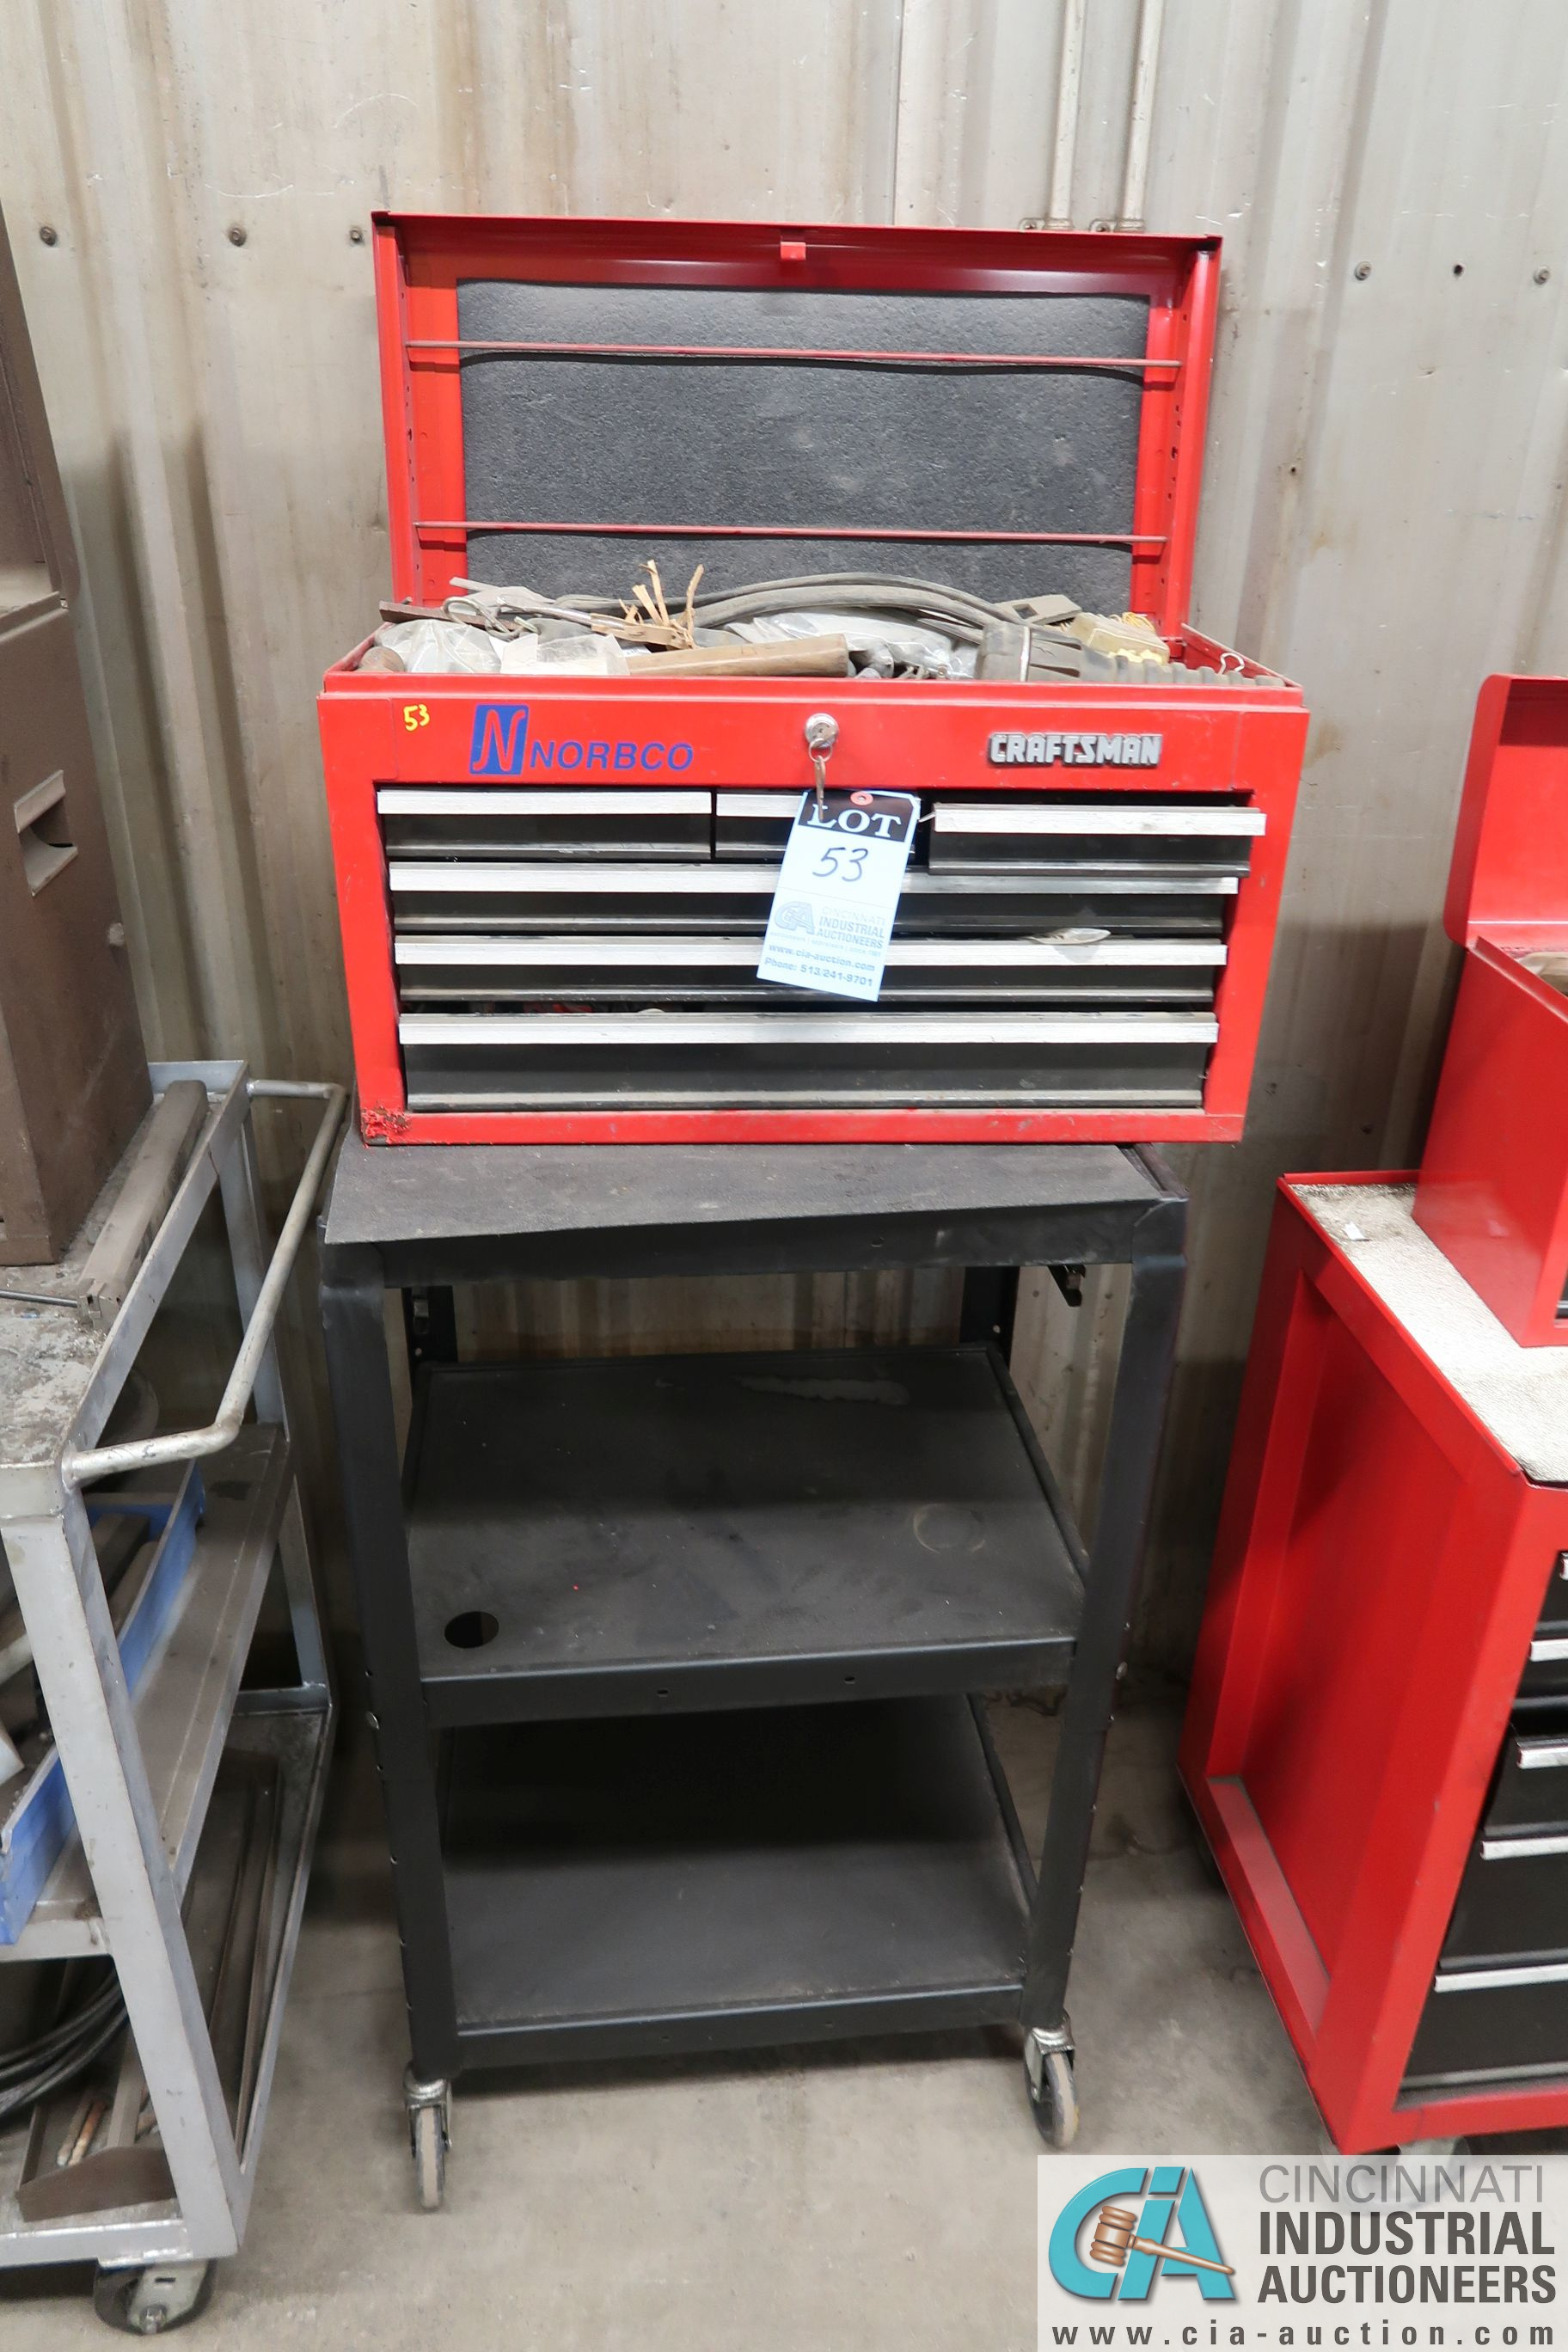 6-DRAWER CRAFTSMAN TOOL BOX WITH TOOLS AND CART